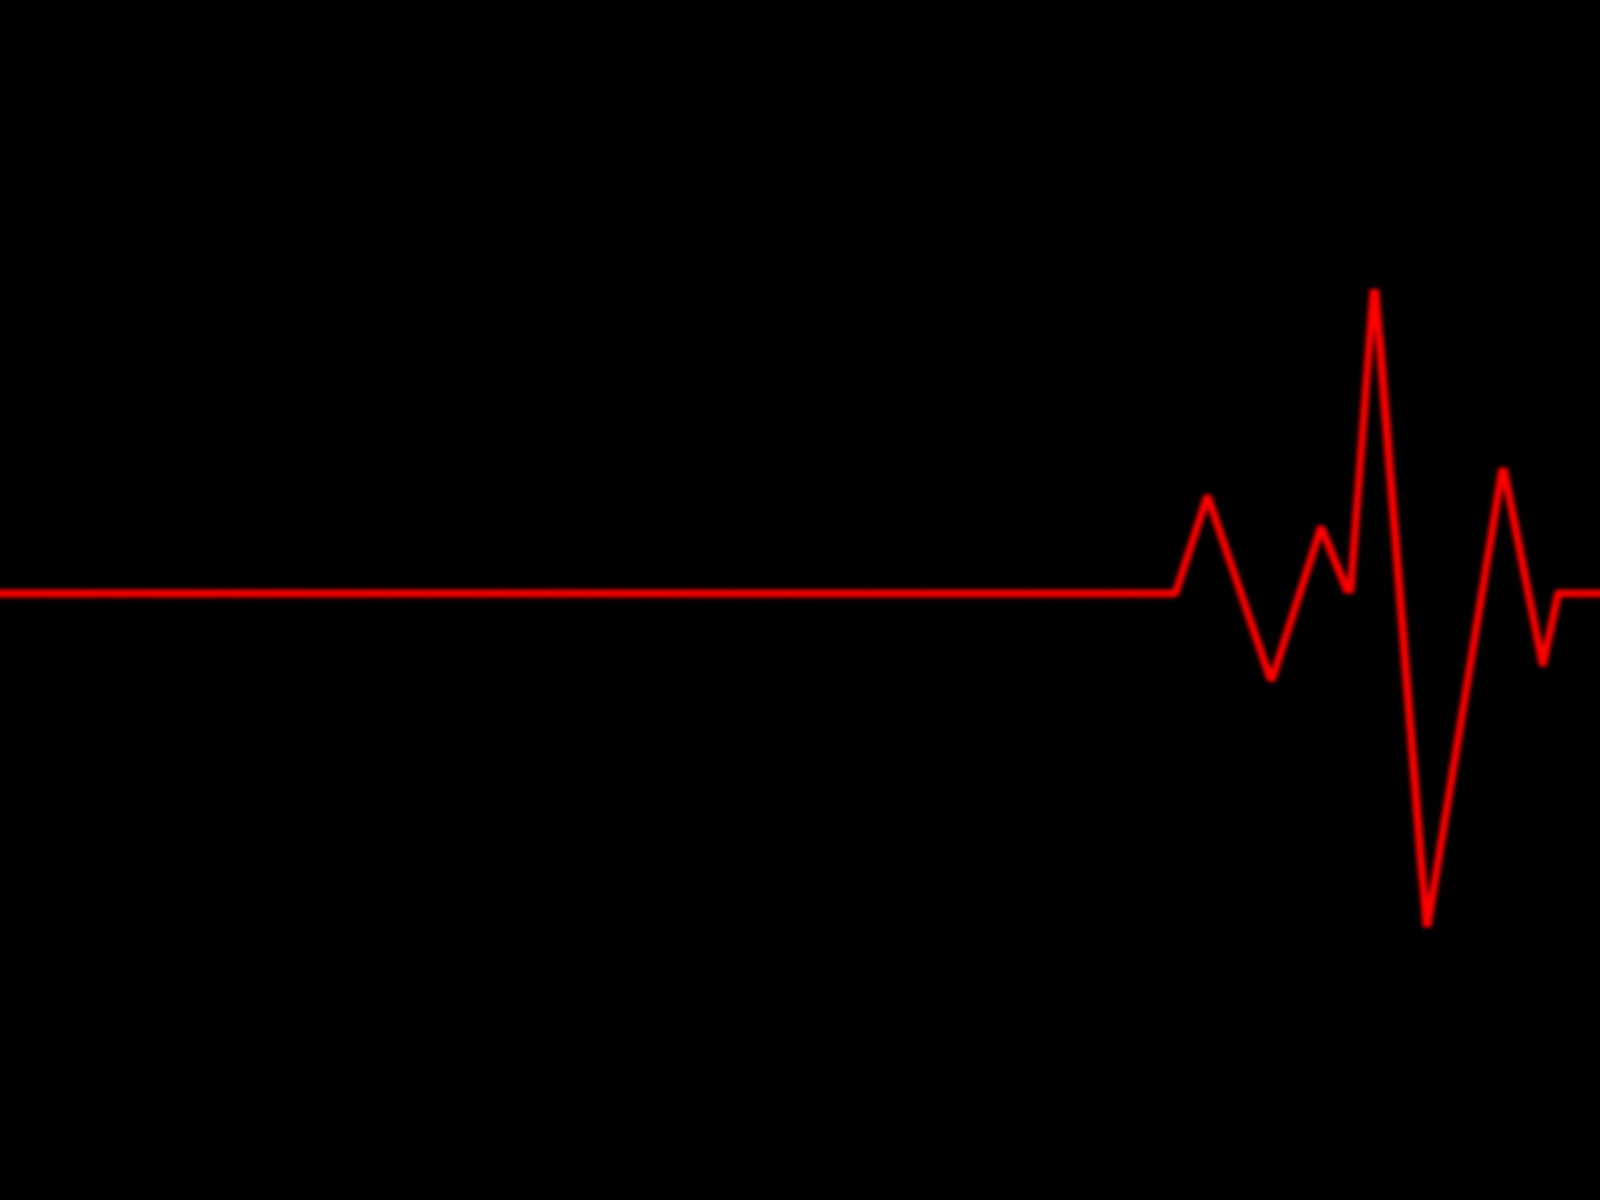 Wallpaper 4 heart beat red and black wallpapers jpg 224